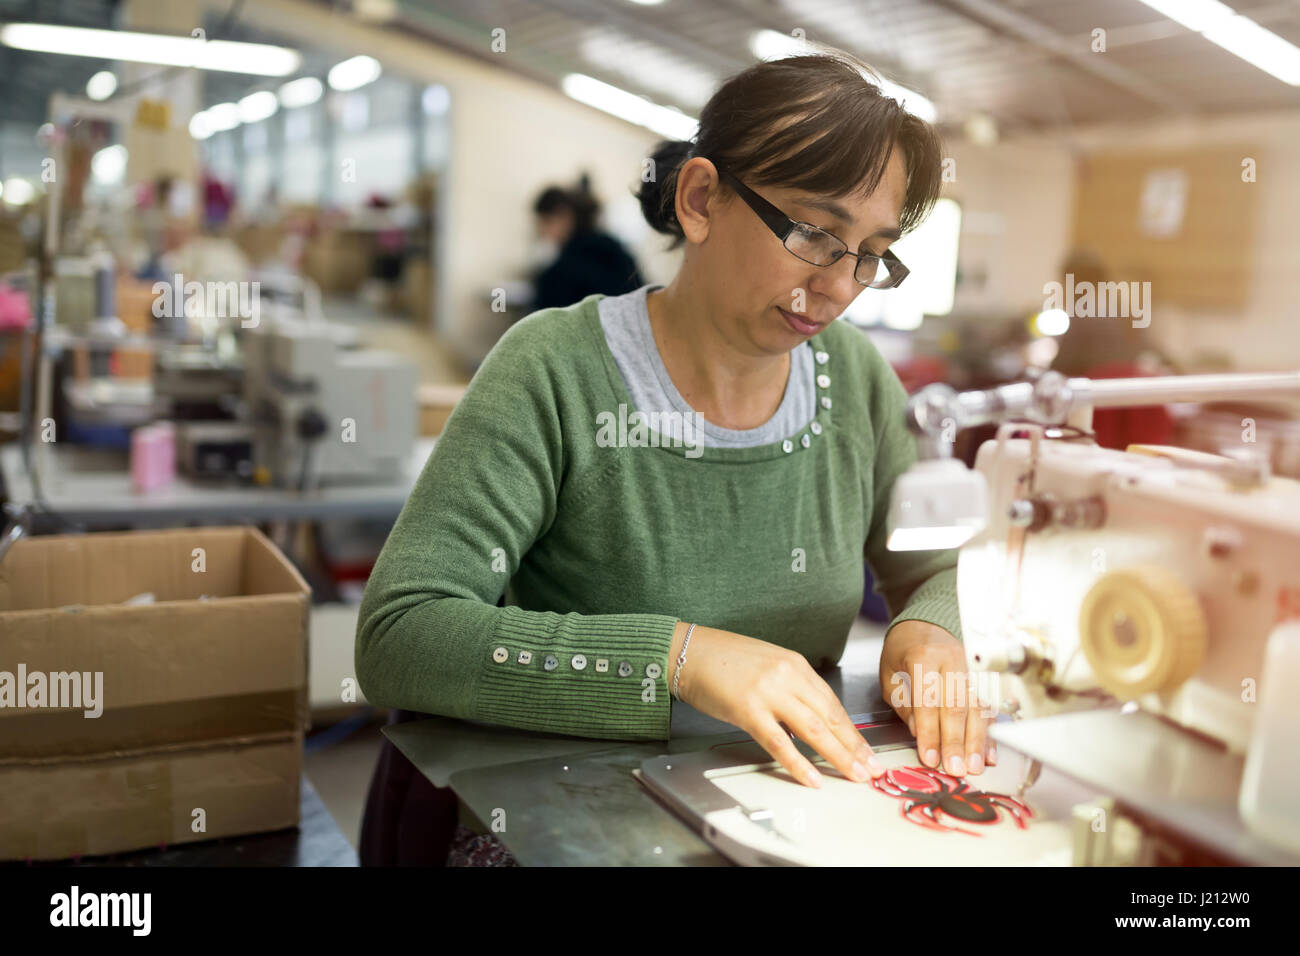 Woman working in sewing industry on machine - Stock Image